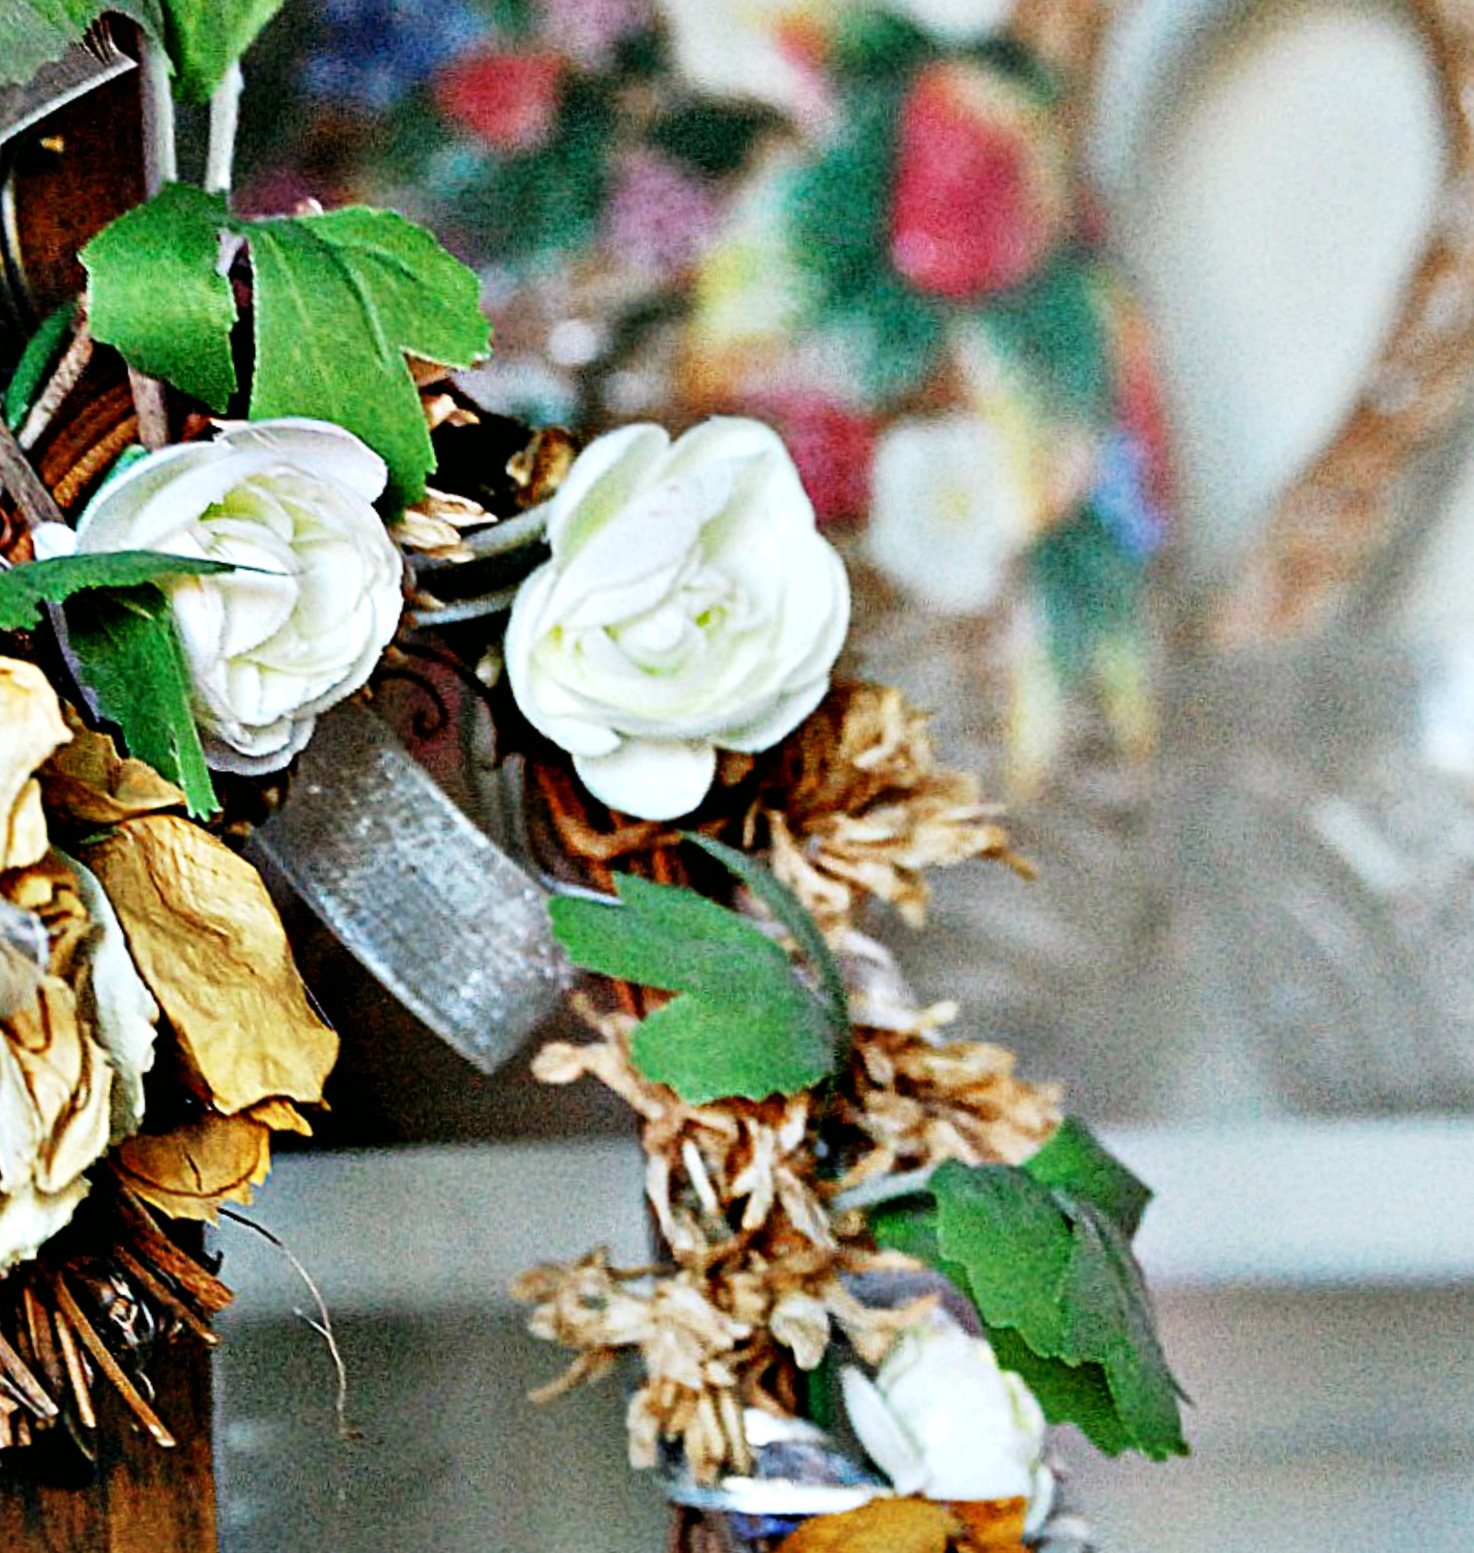 homemaking-faux-flowers-wreaths-home-decor-athomewithjemma